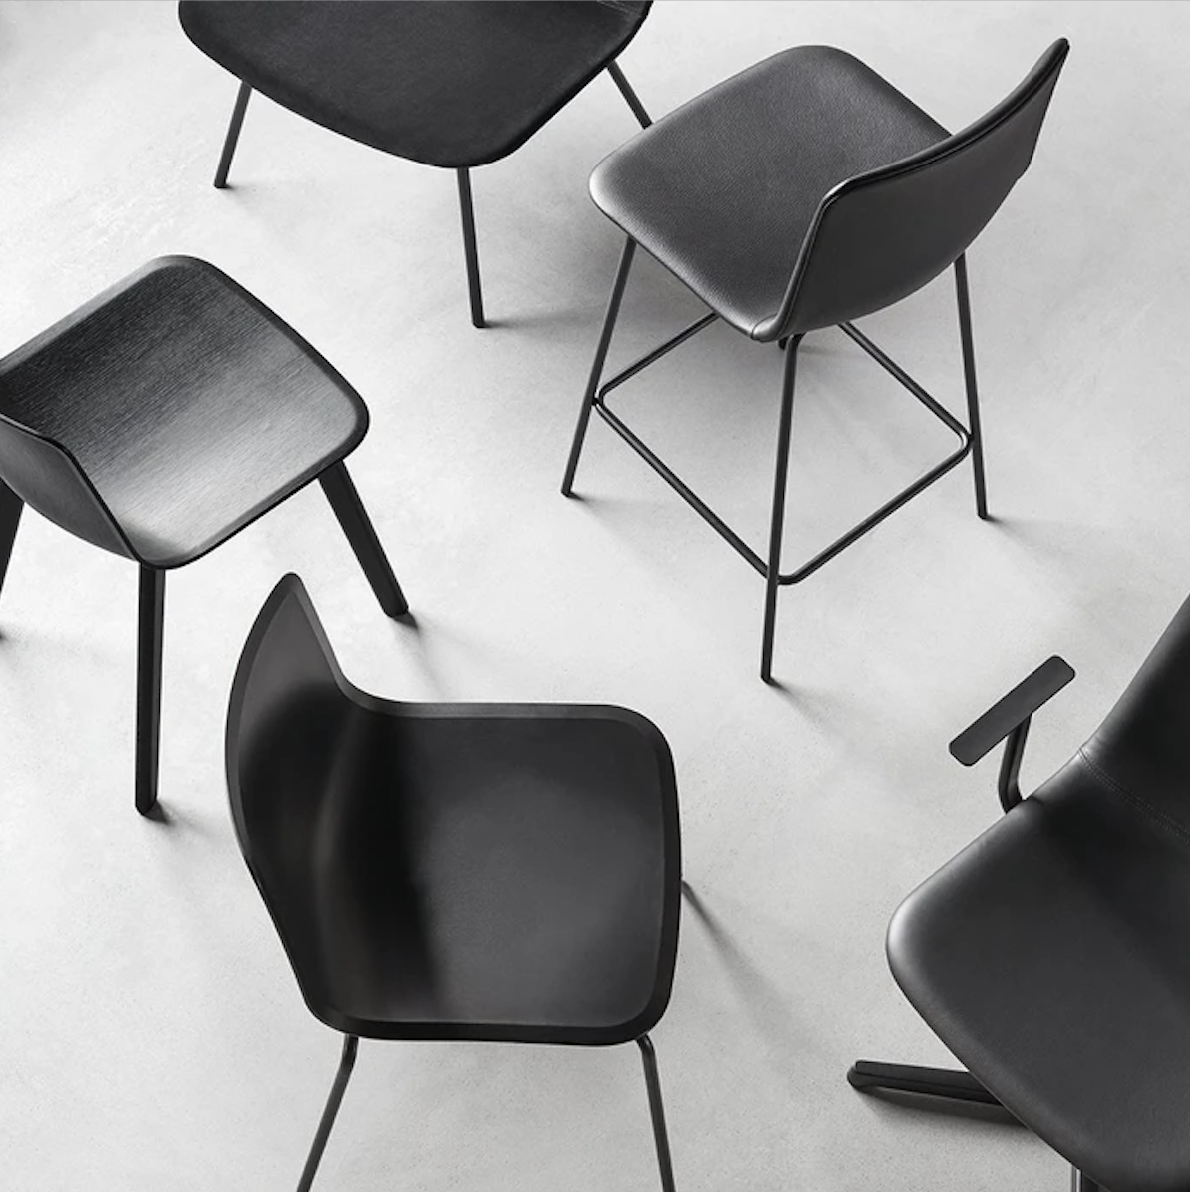 Pato 4 Leg Stool - Pato is a carefully crafted multipurpose chair in eco-friendly polypropylene that can be used outdoors. The chair is available with a range of optional features including coupling. The chair can be tuned from basic to exclusive with optional upholstery.  Pato is a prime example of our focus on sustainability and protecting the environment, reflected in a chair that's 100% renewable and recyclable. All components can be incorporated into future furniture production, thus contributing to a circular economy by minimising the use of materials, resources, waste and pollution.   Merging traditional production methods with cutting-edge technology, Pato is a human-centric, highly versatile series of multi-purpose functional furniture that draws on our in-depth experience with materials, immaculate detailing and heritage of fine craftsmanship. Allowing us to apply our high standards of texture, finish and carpentry techniques to an array of materials in addition to wood for products aimed at a mass market.   With its clean lines and curves, Pato echoes the ethos of Danish-Icelandic design duo Welling/Ludvik. Demonstrating their belief that good design has the ability to be interesting, even when reduced to its most simple form. Where anything extraneous is eliminated and every detail has a purpose.   Together we spent nearly three years developing the shell structure to have a soft surface that's also wear and tear resistant. Enhancing the chair's ability to optimally conform to the user's body is a subtle beveled edge. A technique from classic cabinetmaking, which gives the chair a sense of handcrafted finesse. Each Pato is detailed and finished by hand by our highly skilled crafts people, who refine the beveled edge and the silky, resilient surface. Setting a new standard for the execution and finish of polypropylene.   Since the success of its initial launch, we've expanded Pato into an extensive collection of variants, featuring armchairs, barstools, o